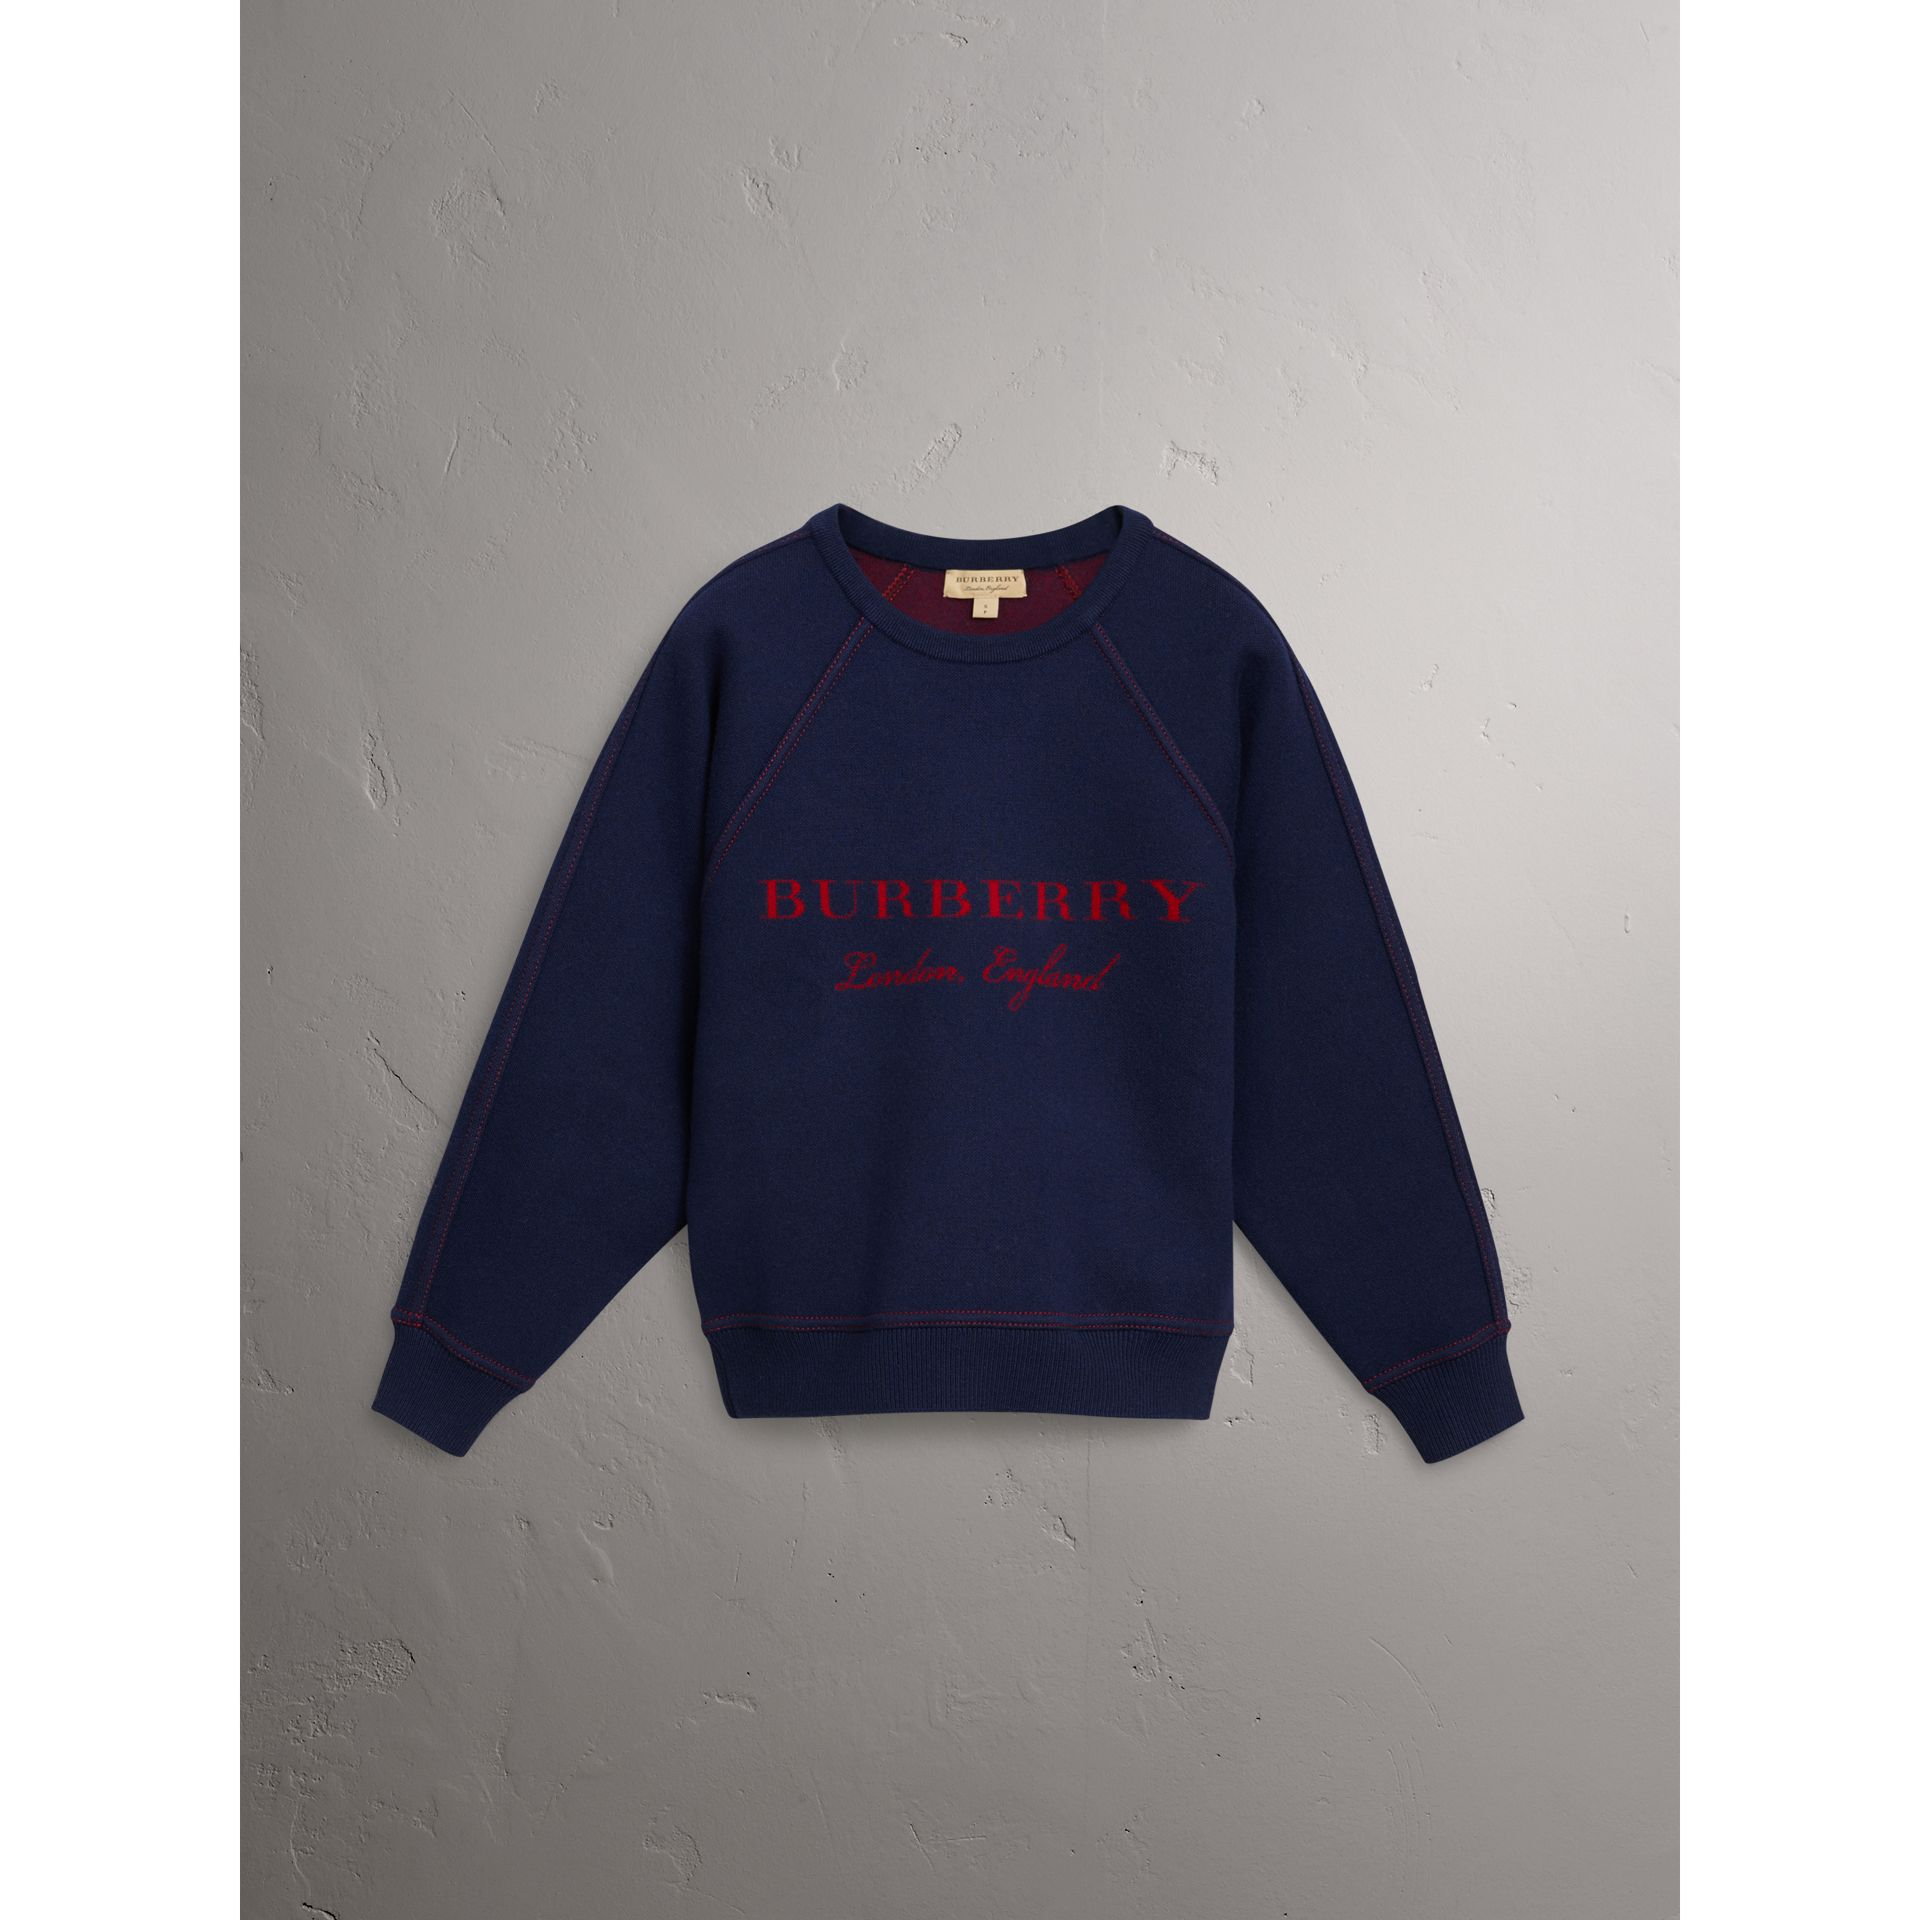 Topstitch Detail Wool Cashmere Blend Sweater in Navy - Women | Burberry United States - gallery image 4